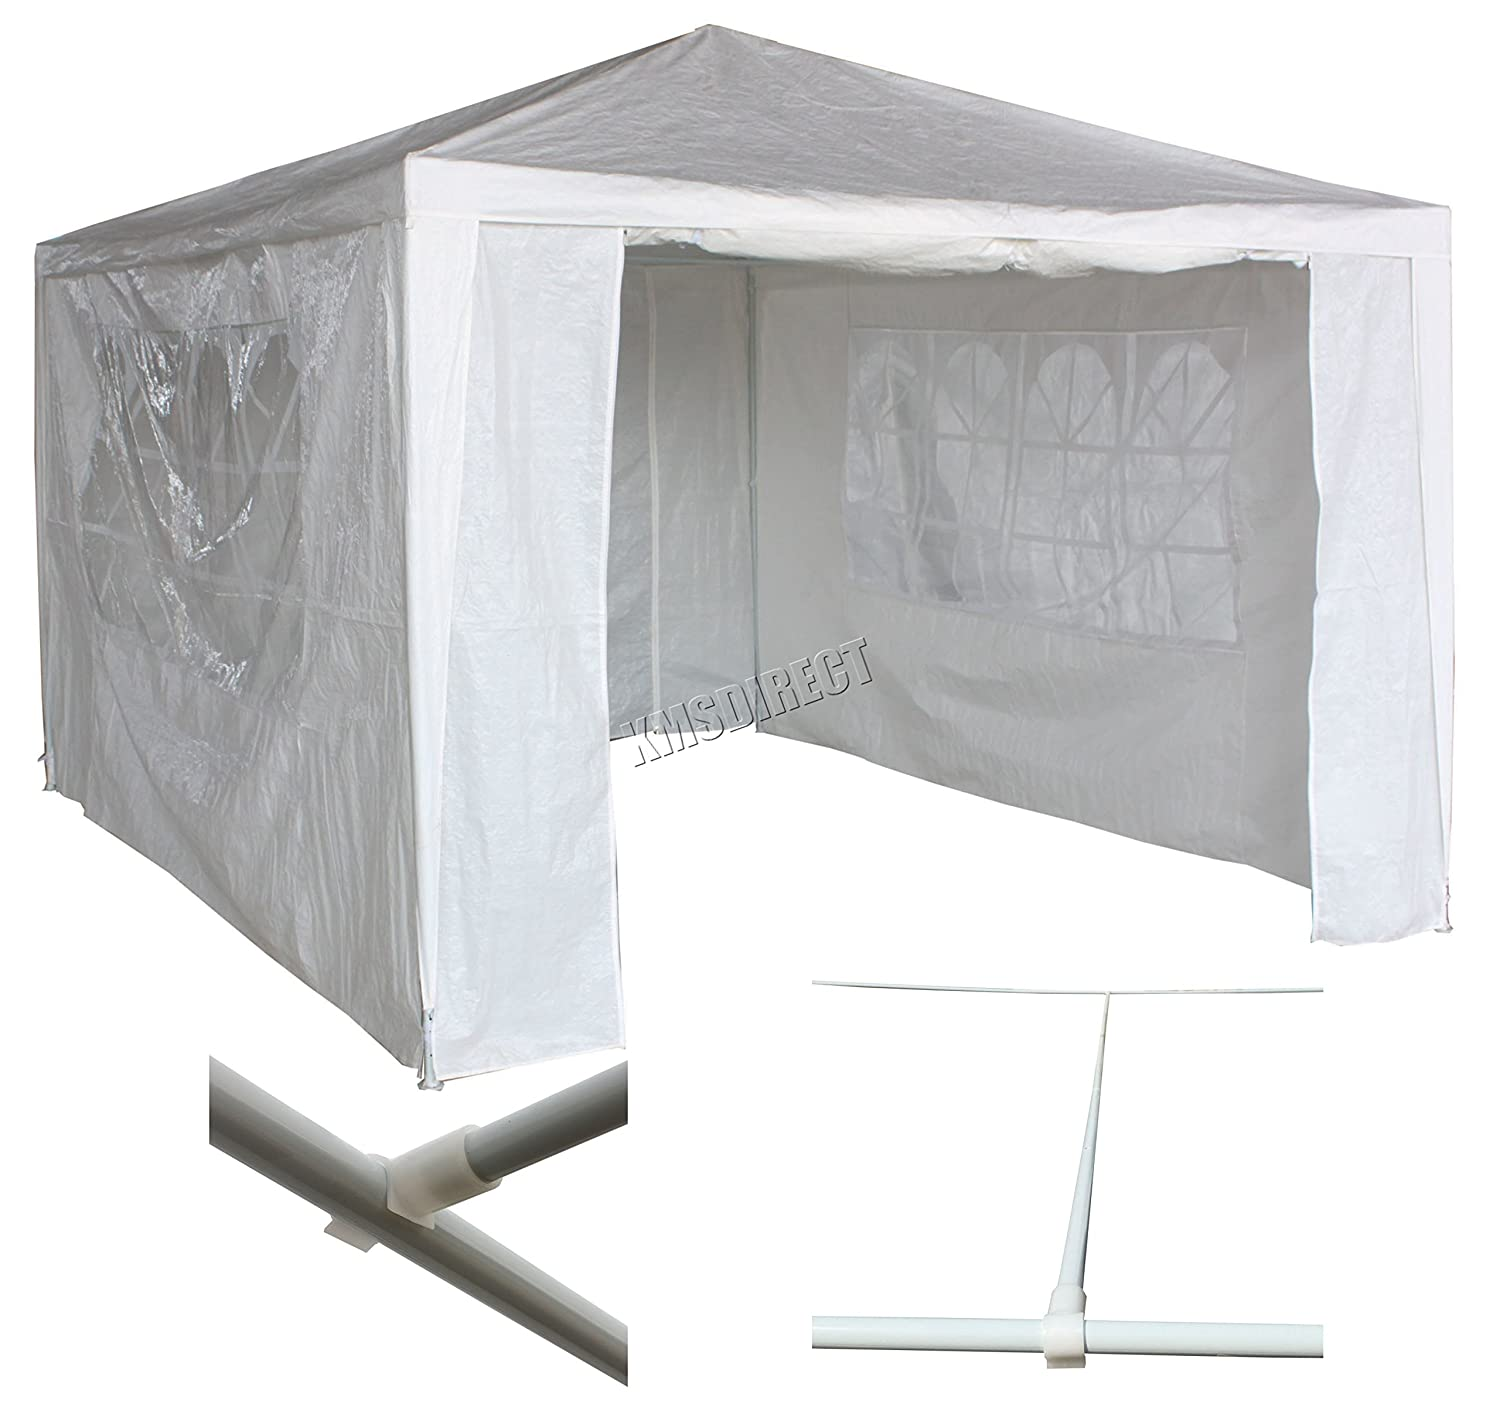 FoxHunter Waterproof 3m x 4m PE Gazebo Marquee Awning Party Tent Canopy White 120g Polyester Power Coated Steel Frame With Support Beam